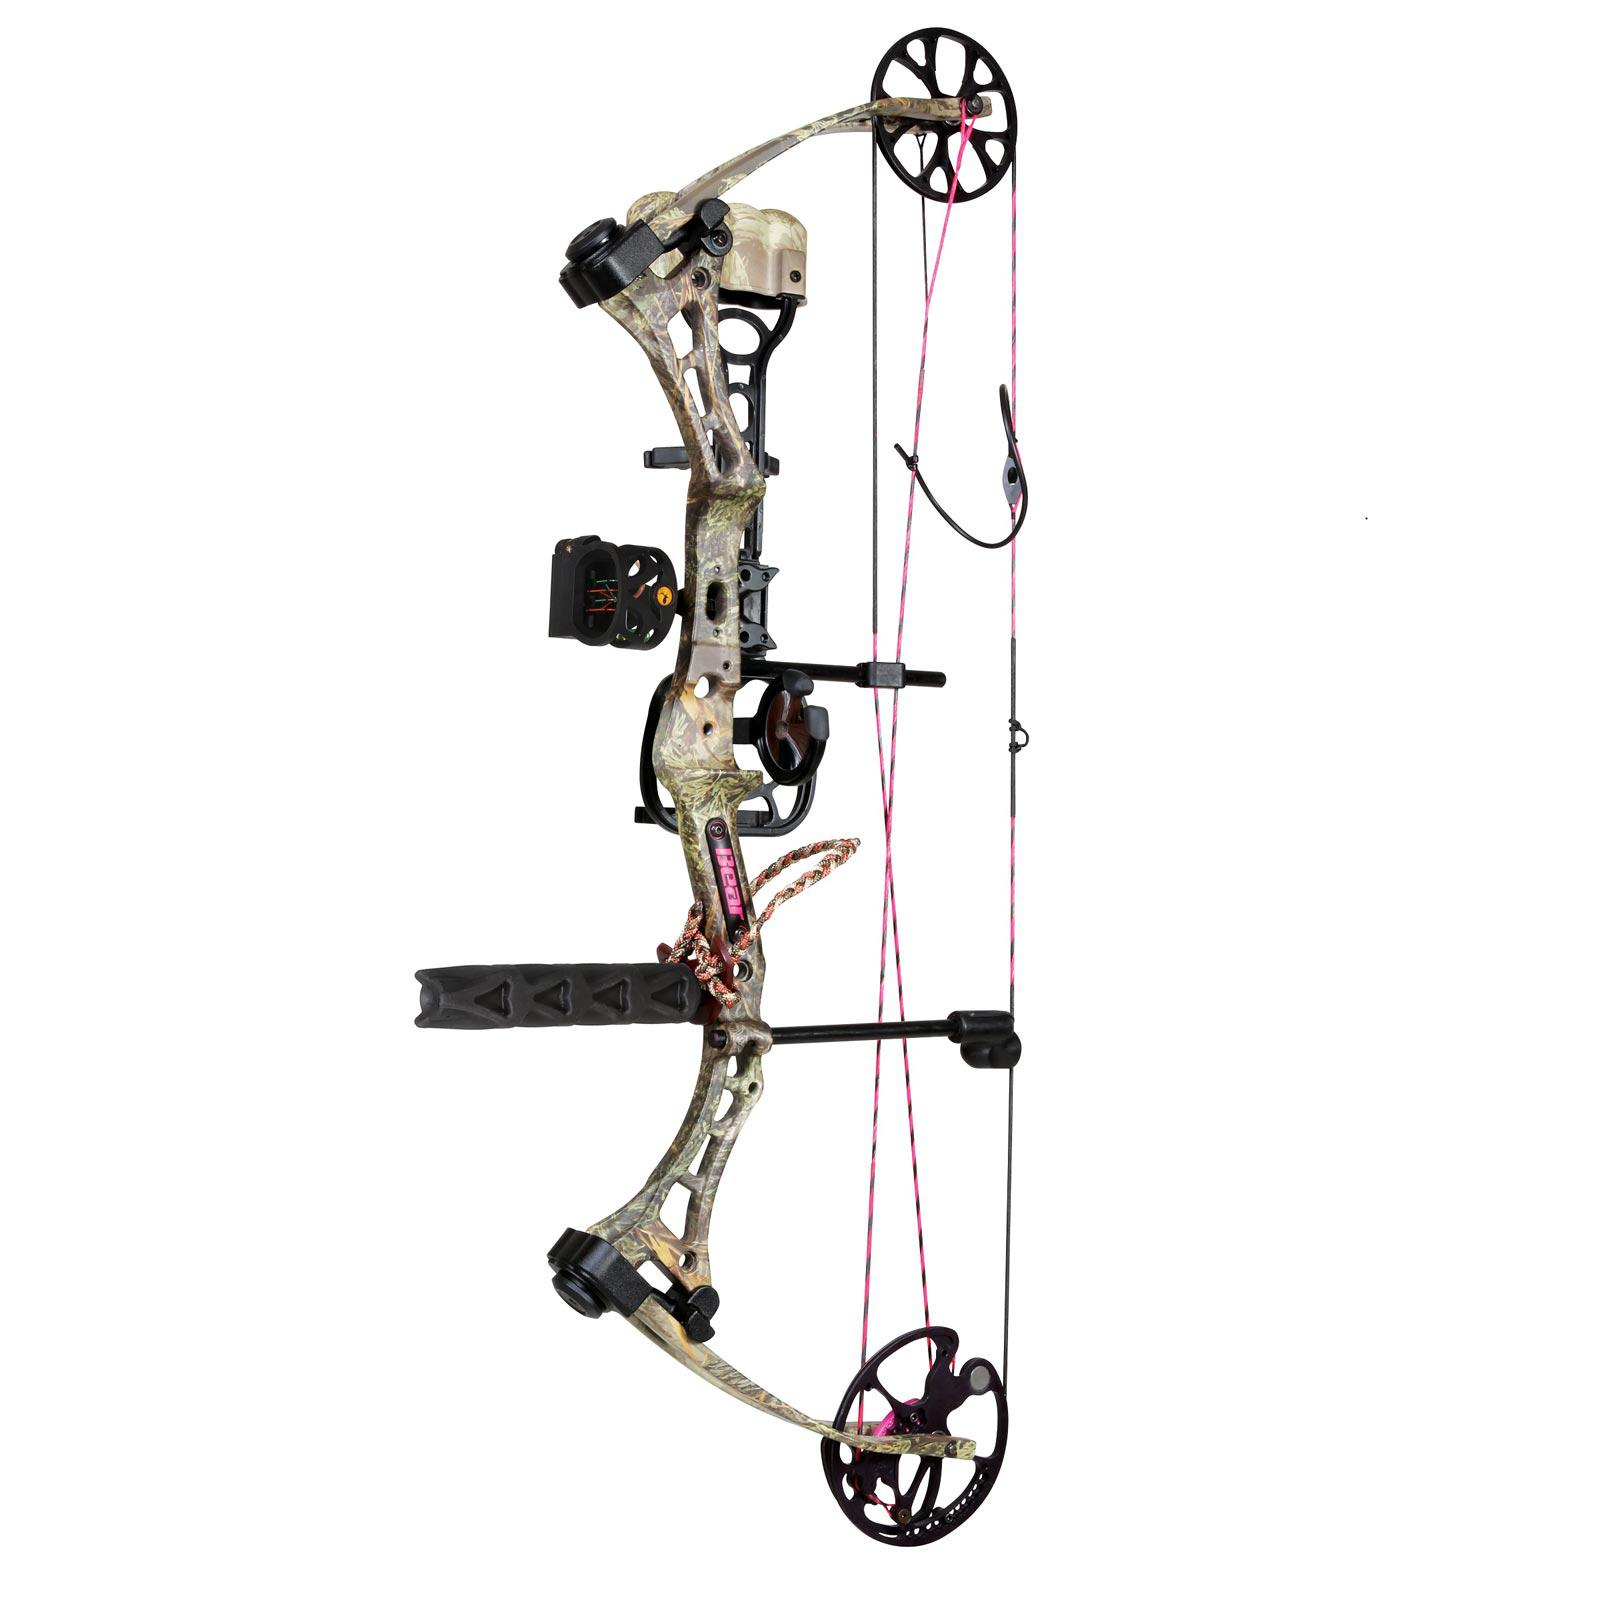 Bear Archery Finesse RTH Compound Bow RH 40# 23-28in Max-1/Pink, A4FS11004R